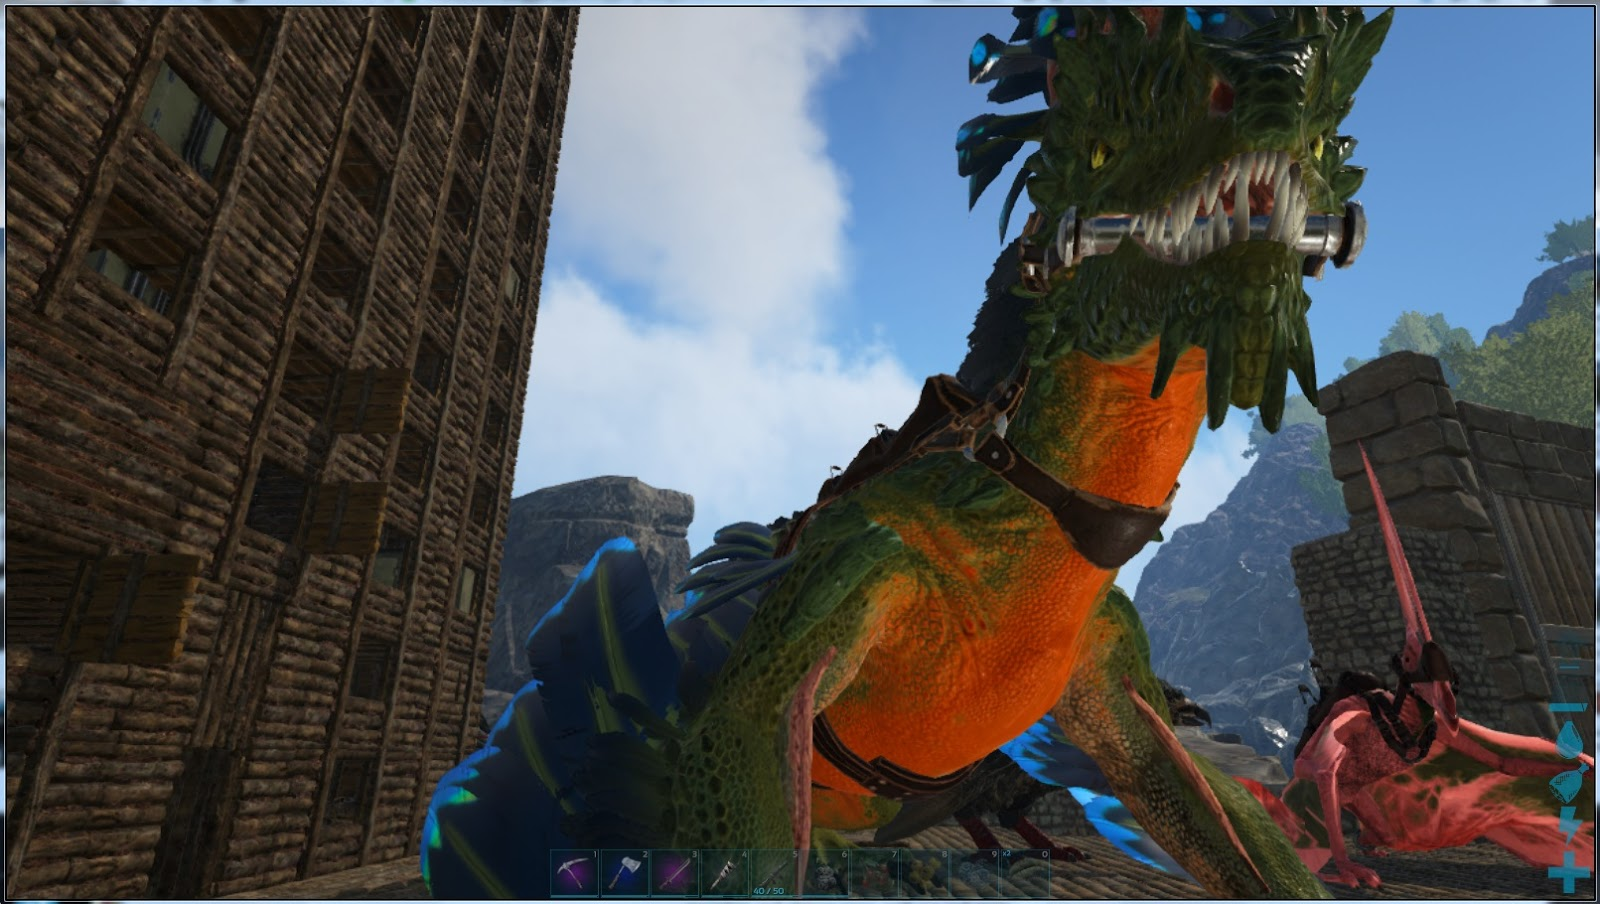 SL Newser - Other Grids, MMOs, and Games: Ark Survival